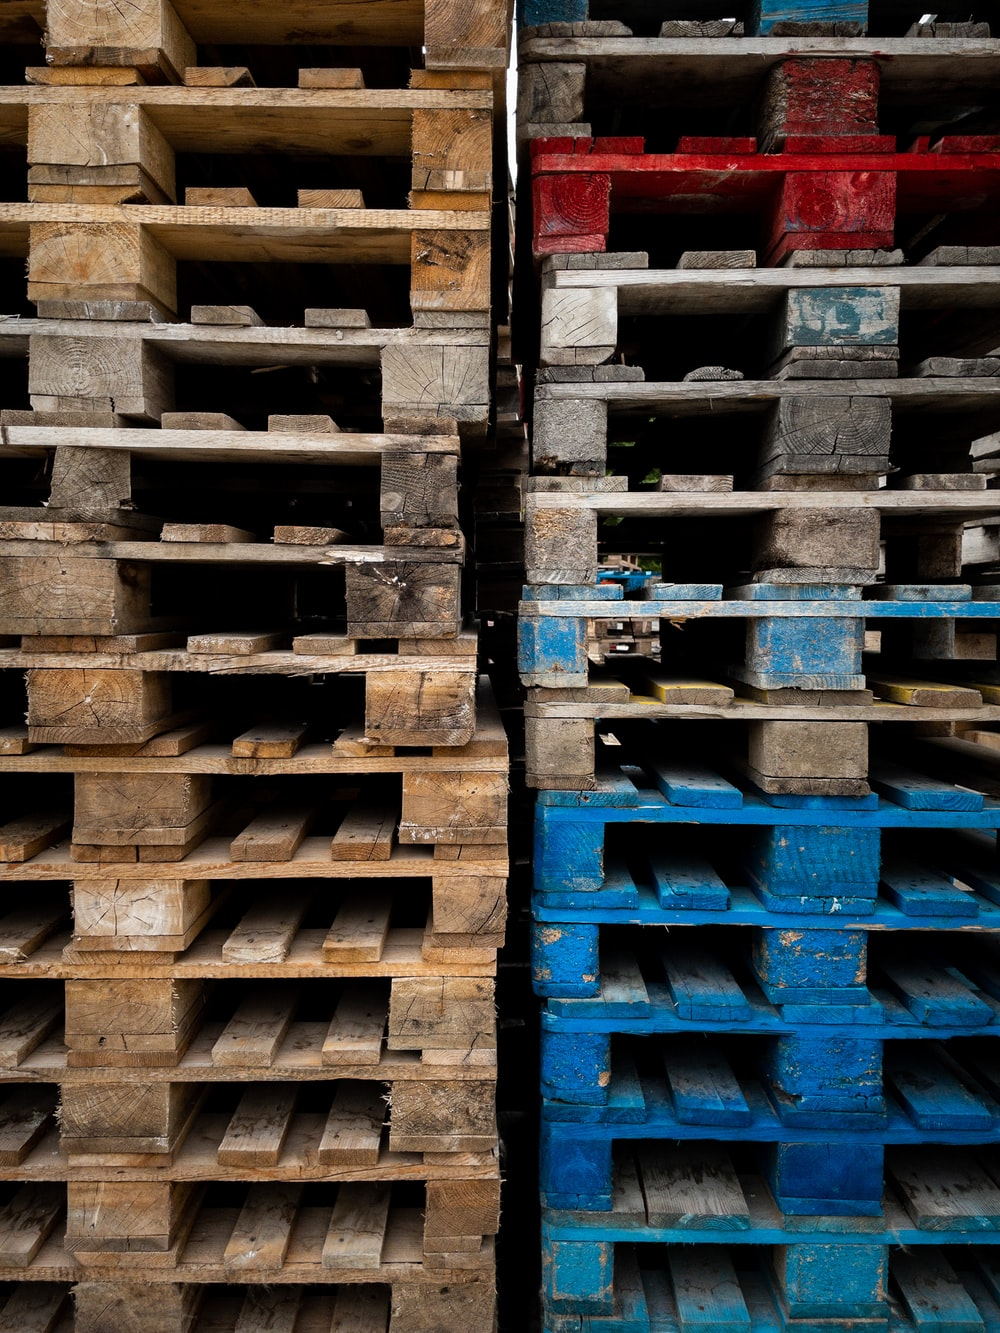 brown wooden crates with red and blue plastic crates